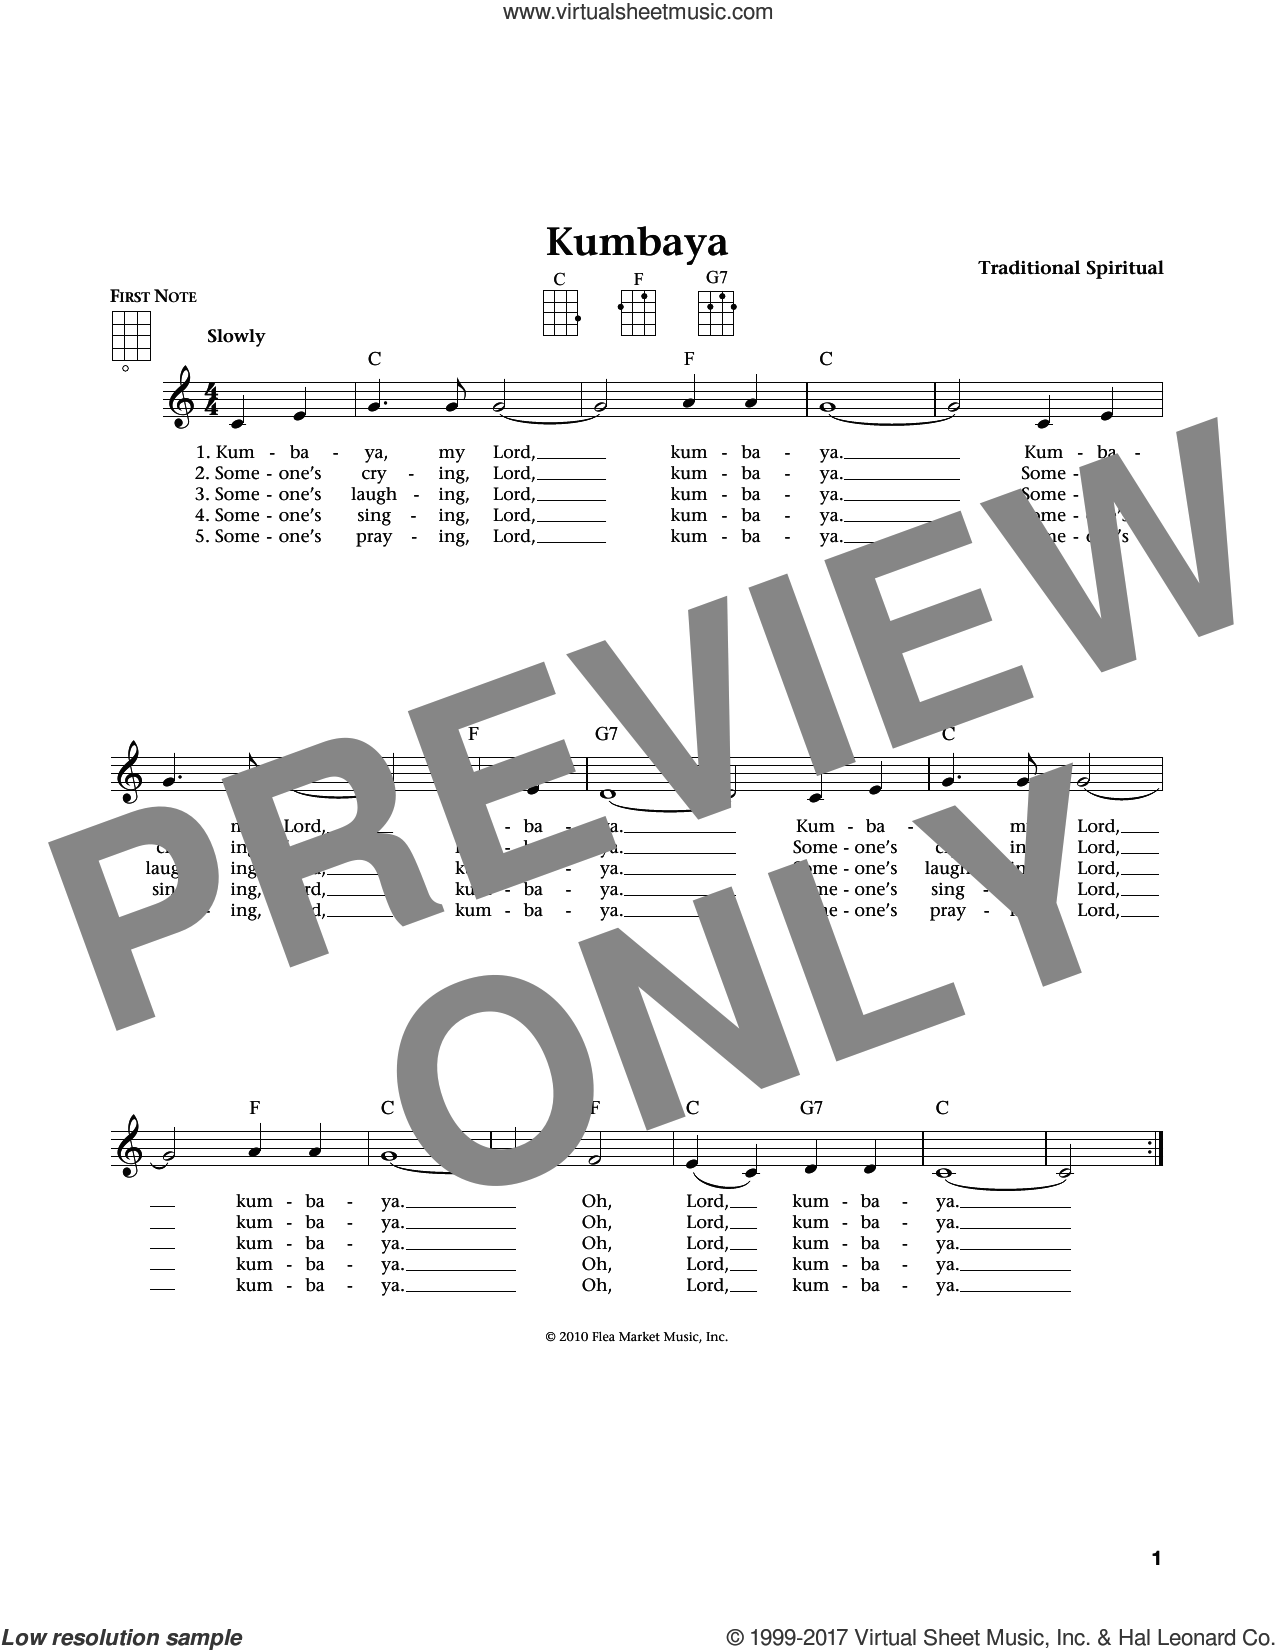 Kum Ba Yah (from The Daily Ukulele) (arr. Liz and Jim Beloff) sheet music for ukulele , Jim Beloff and Liz Beloff, intermediate skill level